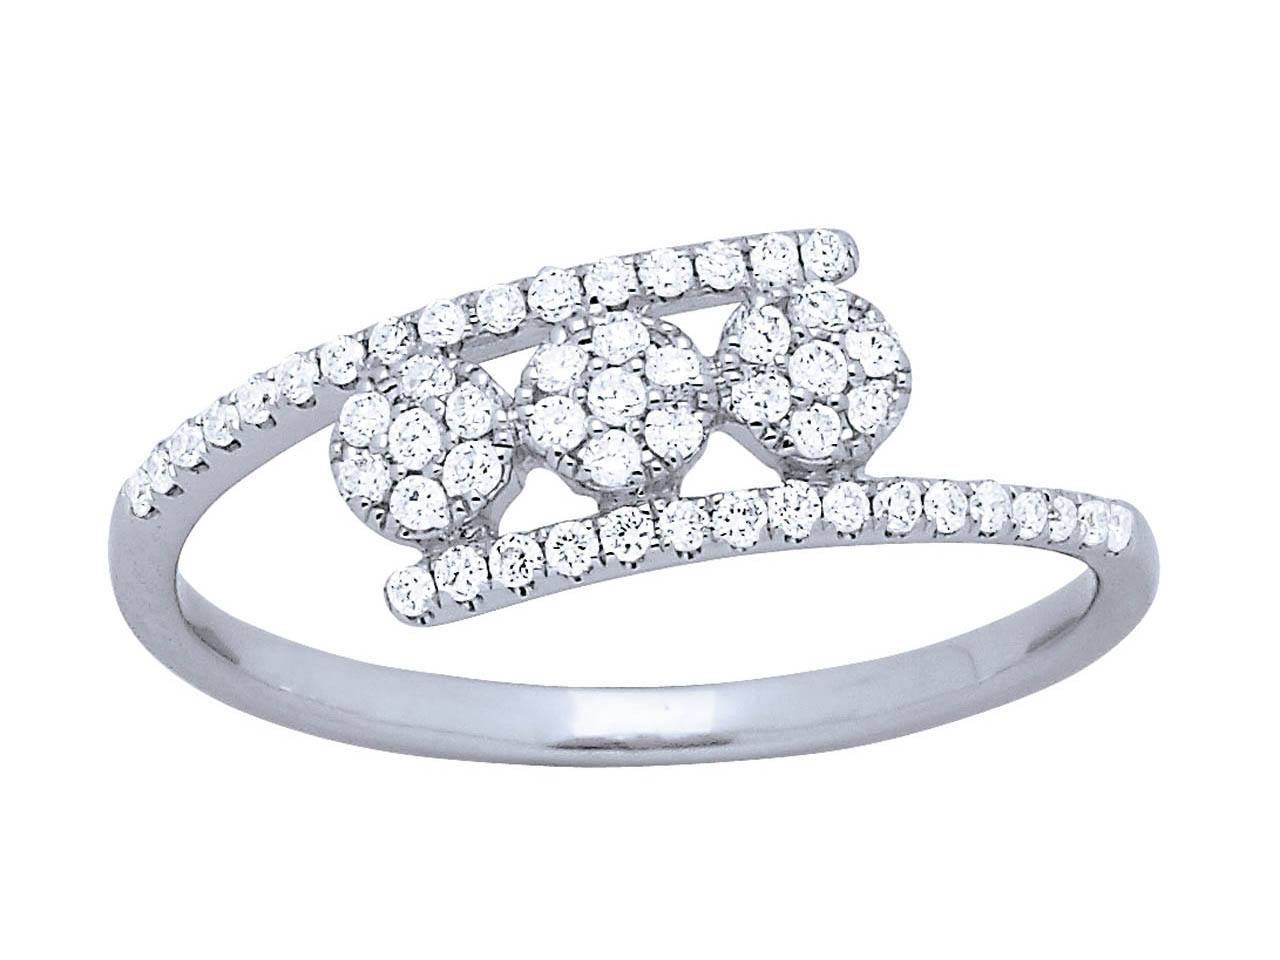 Bague trilogie tout sertie diamants, Or gris, diamants 0,22 ct, doigt 52